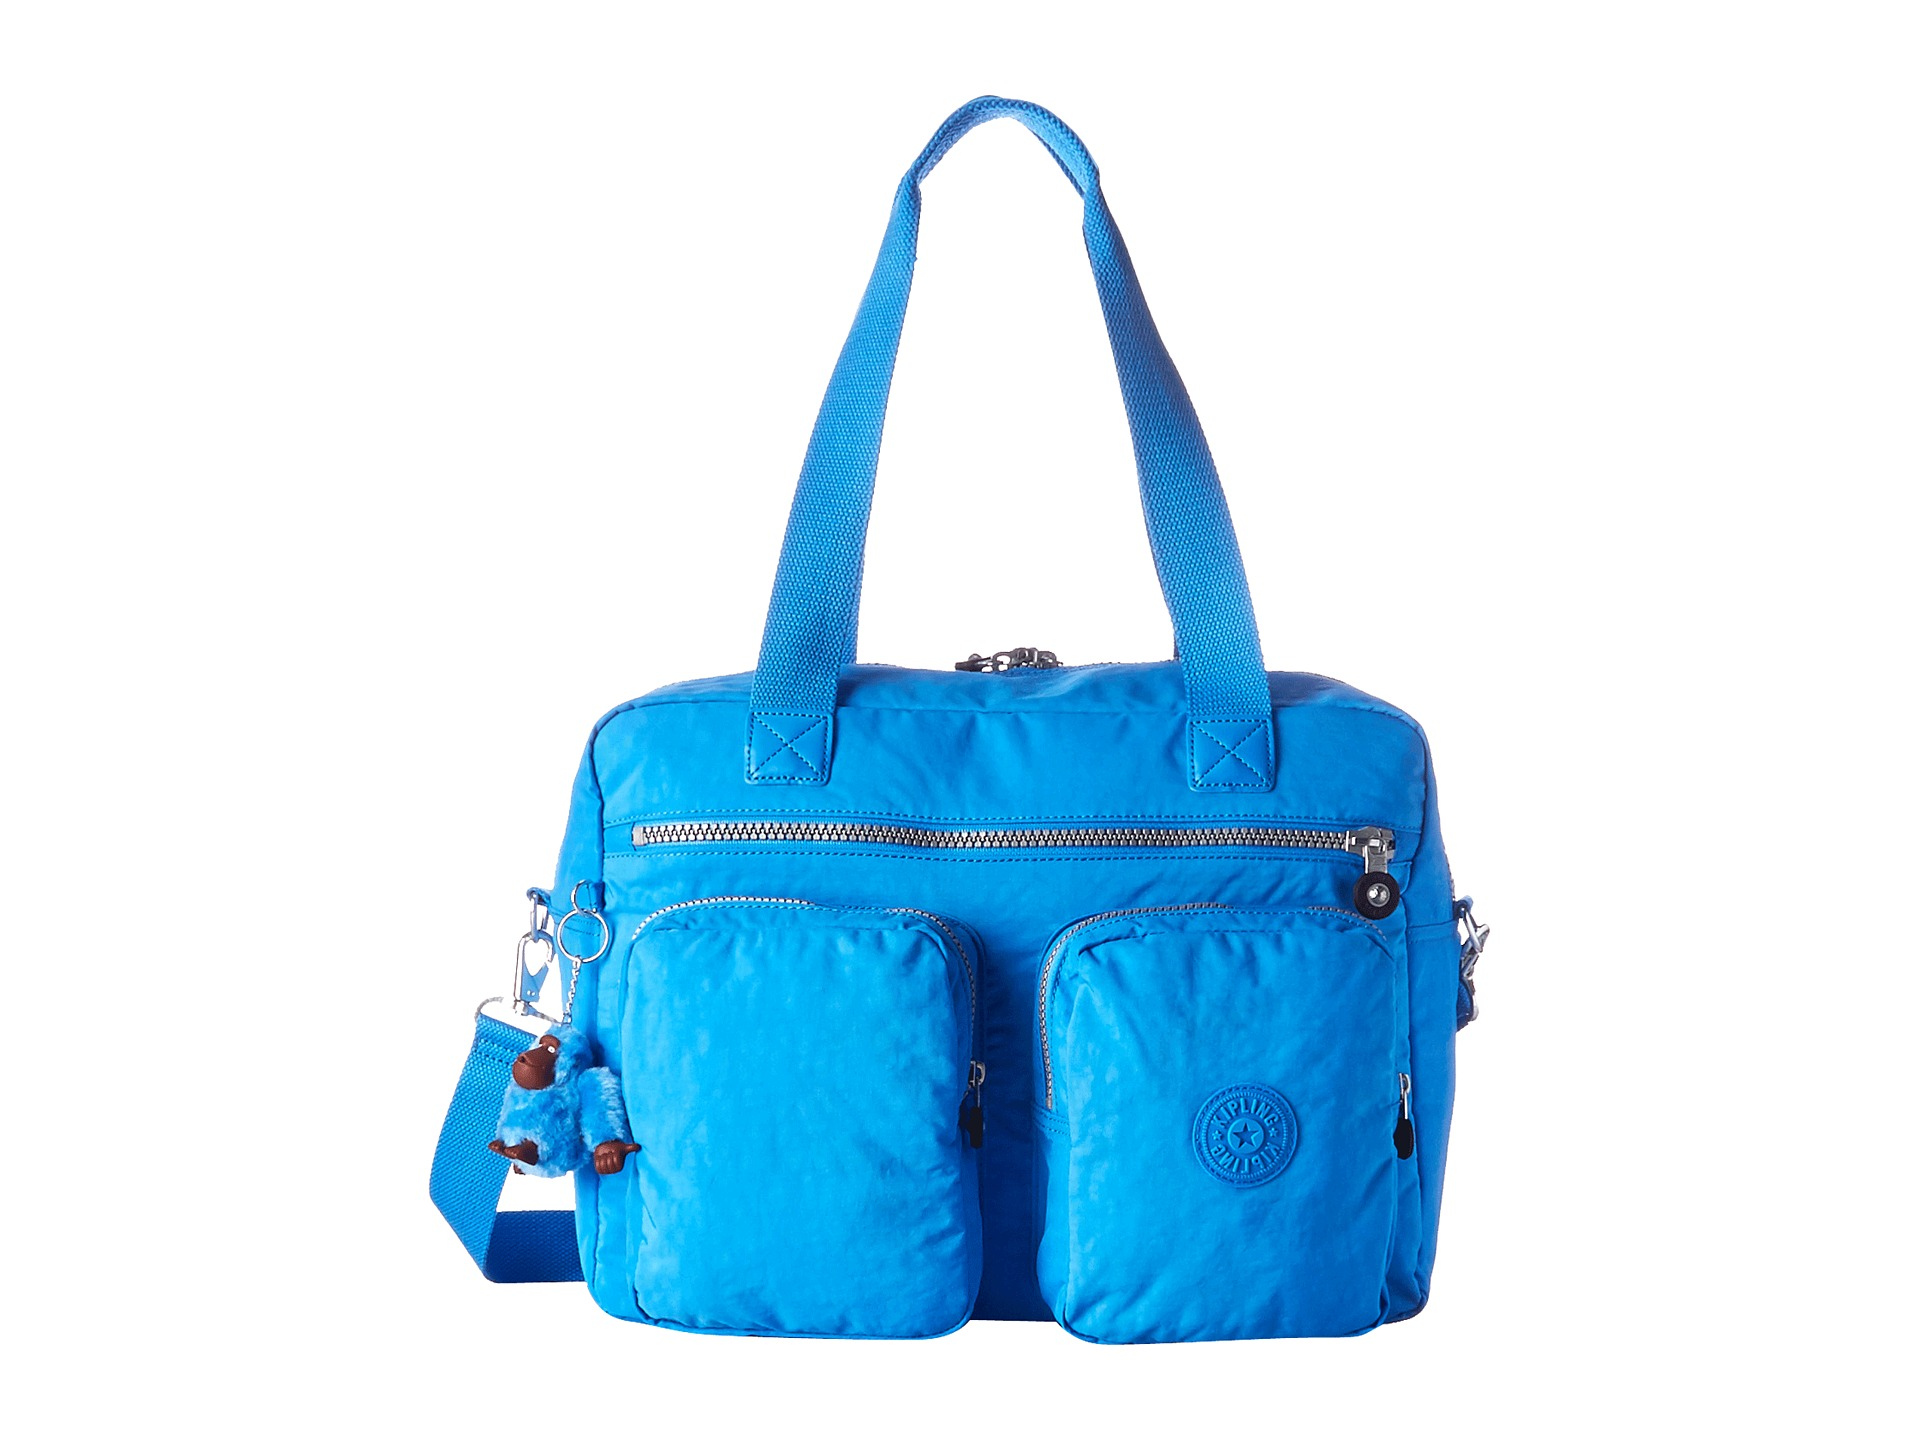 Kipling Women'S Cammie Small Shoulder Bag Blue Teal 96